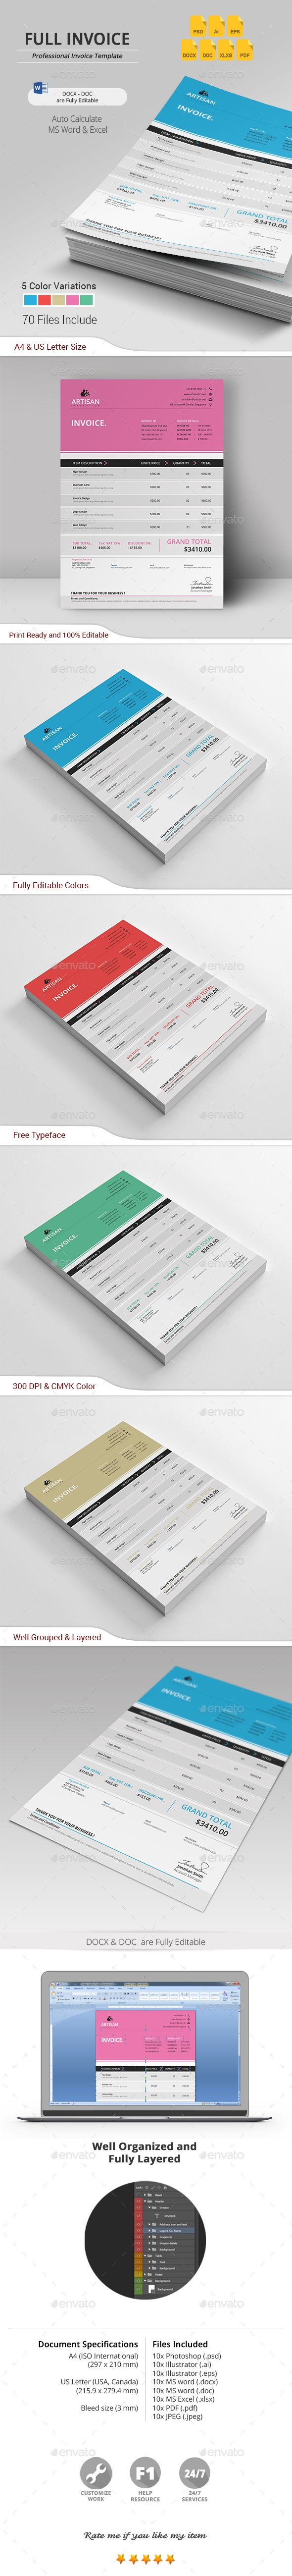 Invoice Template PSD, Vector EPS, AI Illustrator, MS Word